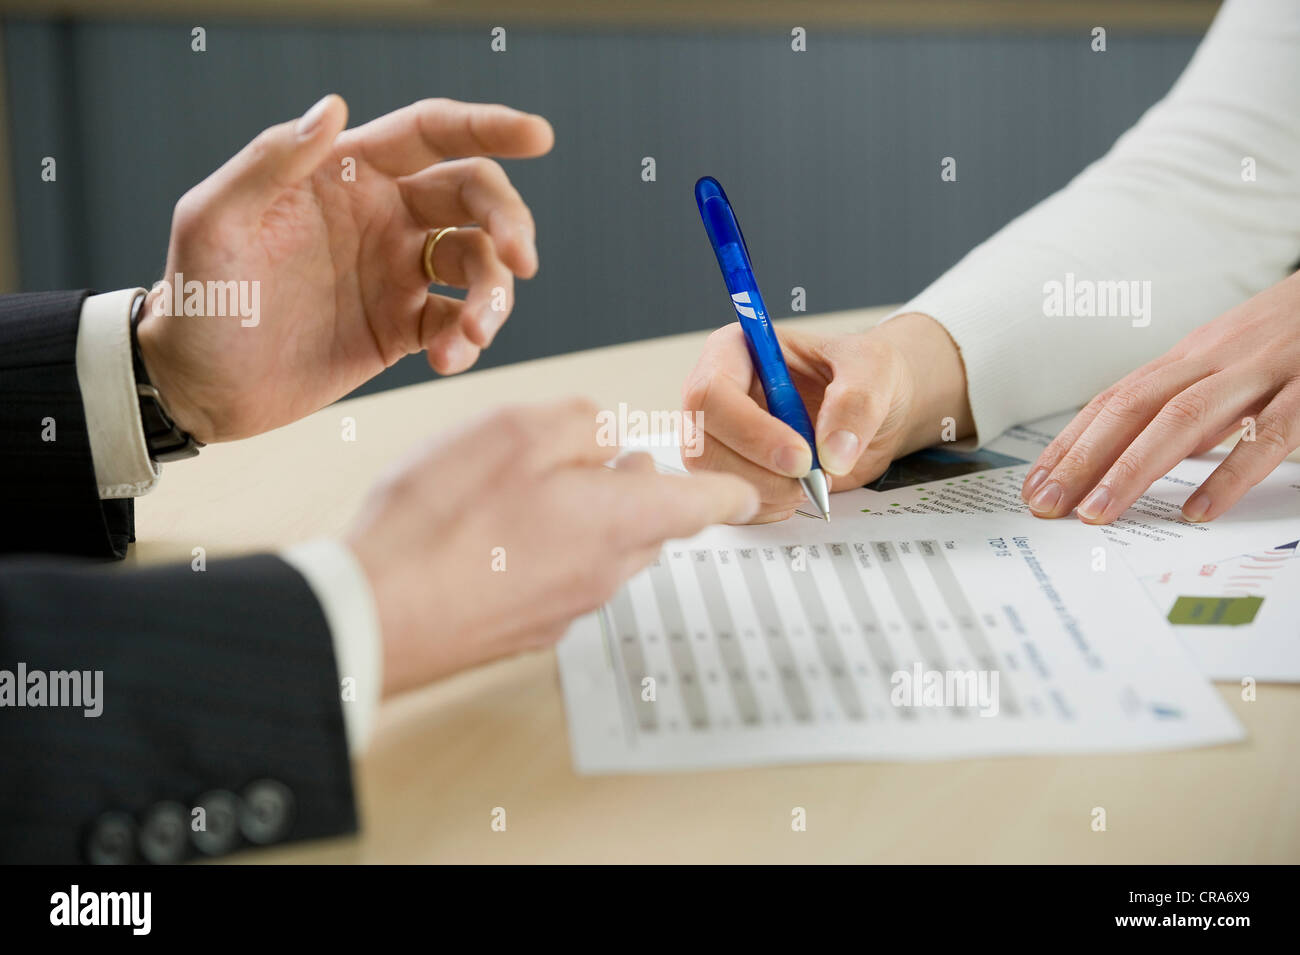 Working in the office, detail, hands - Stock Image